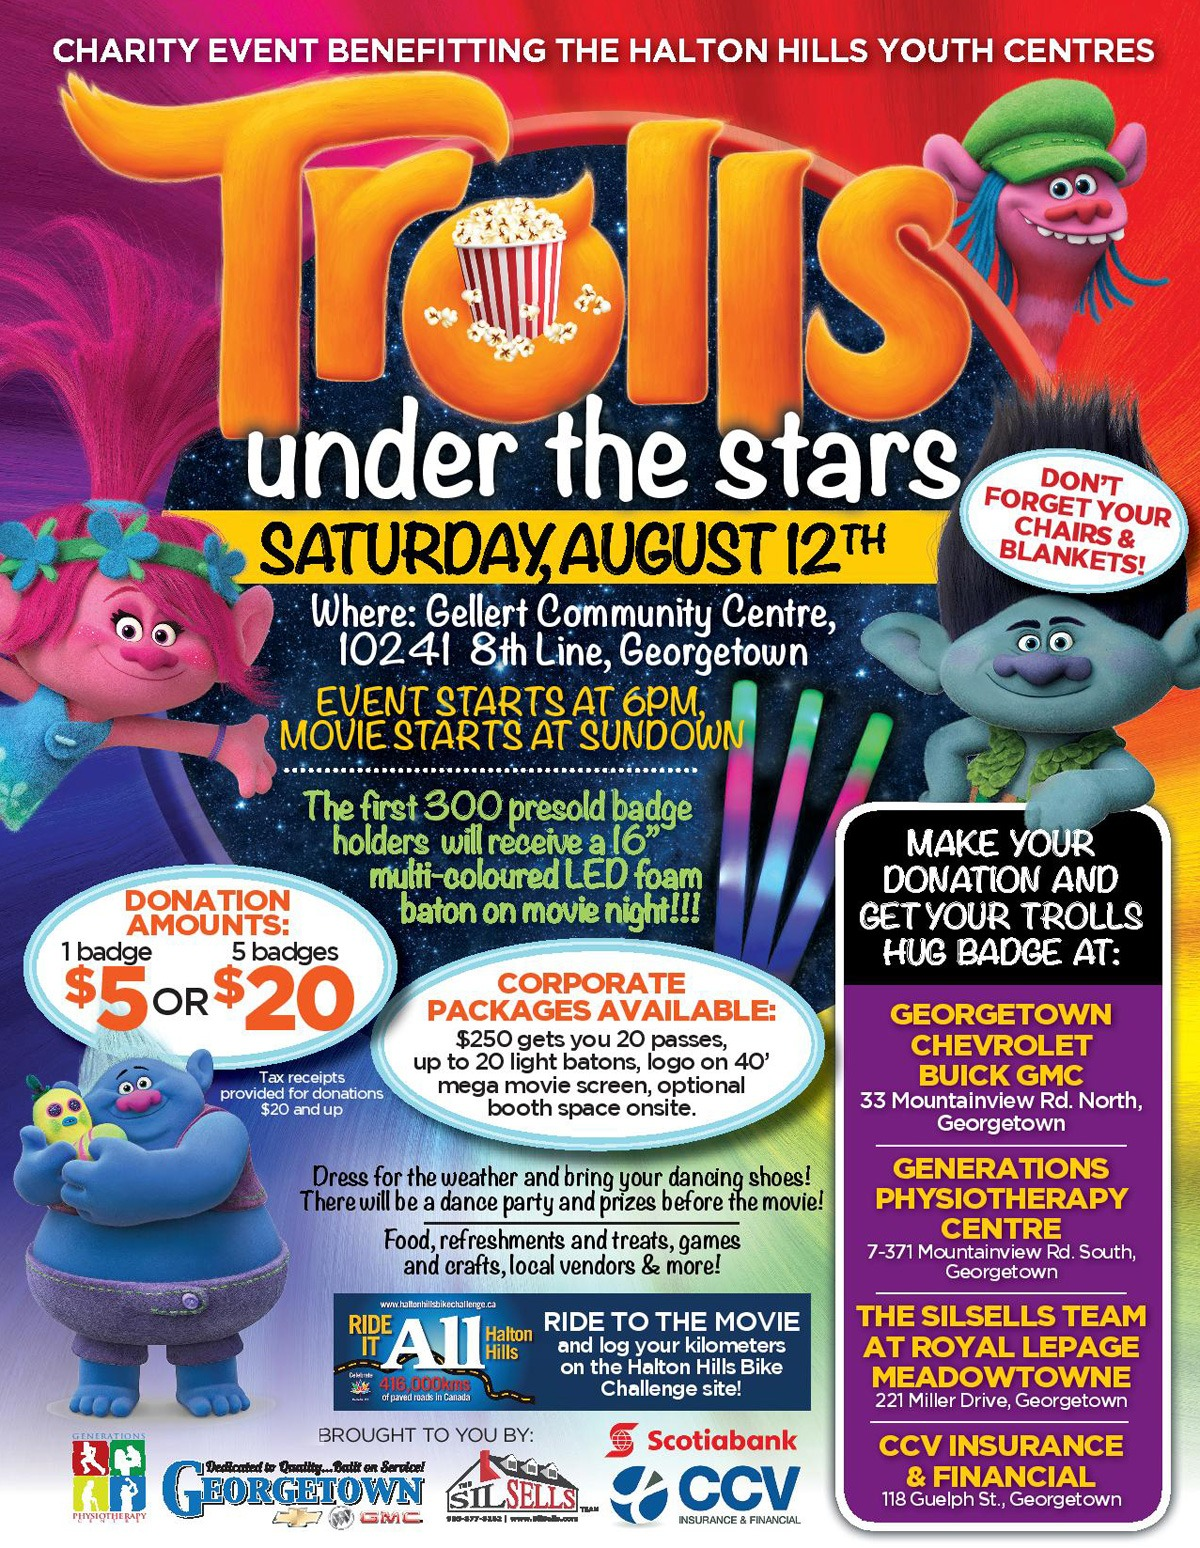 Come enjoy Trolls under the stars with Georgetown Chevrolet Buick GMC with all proceeds going to support the Halton Hills Youth Centres